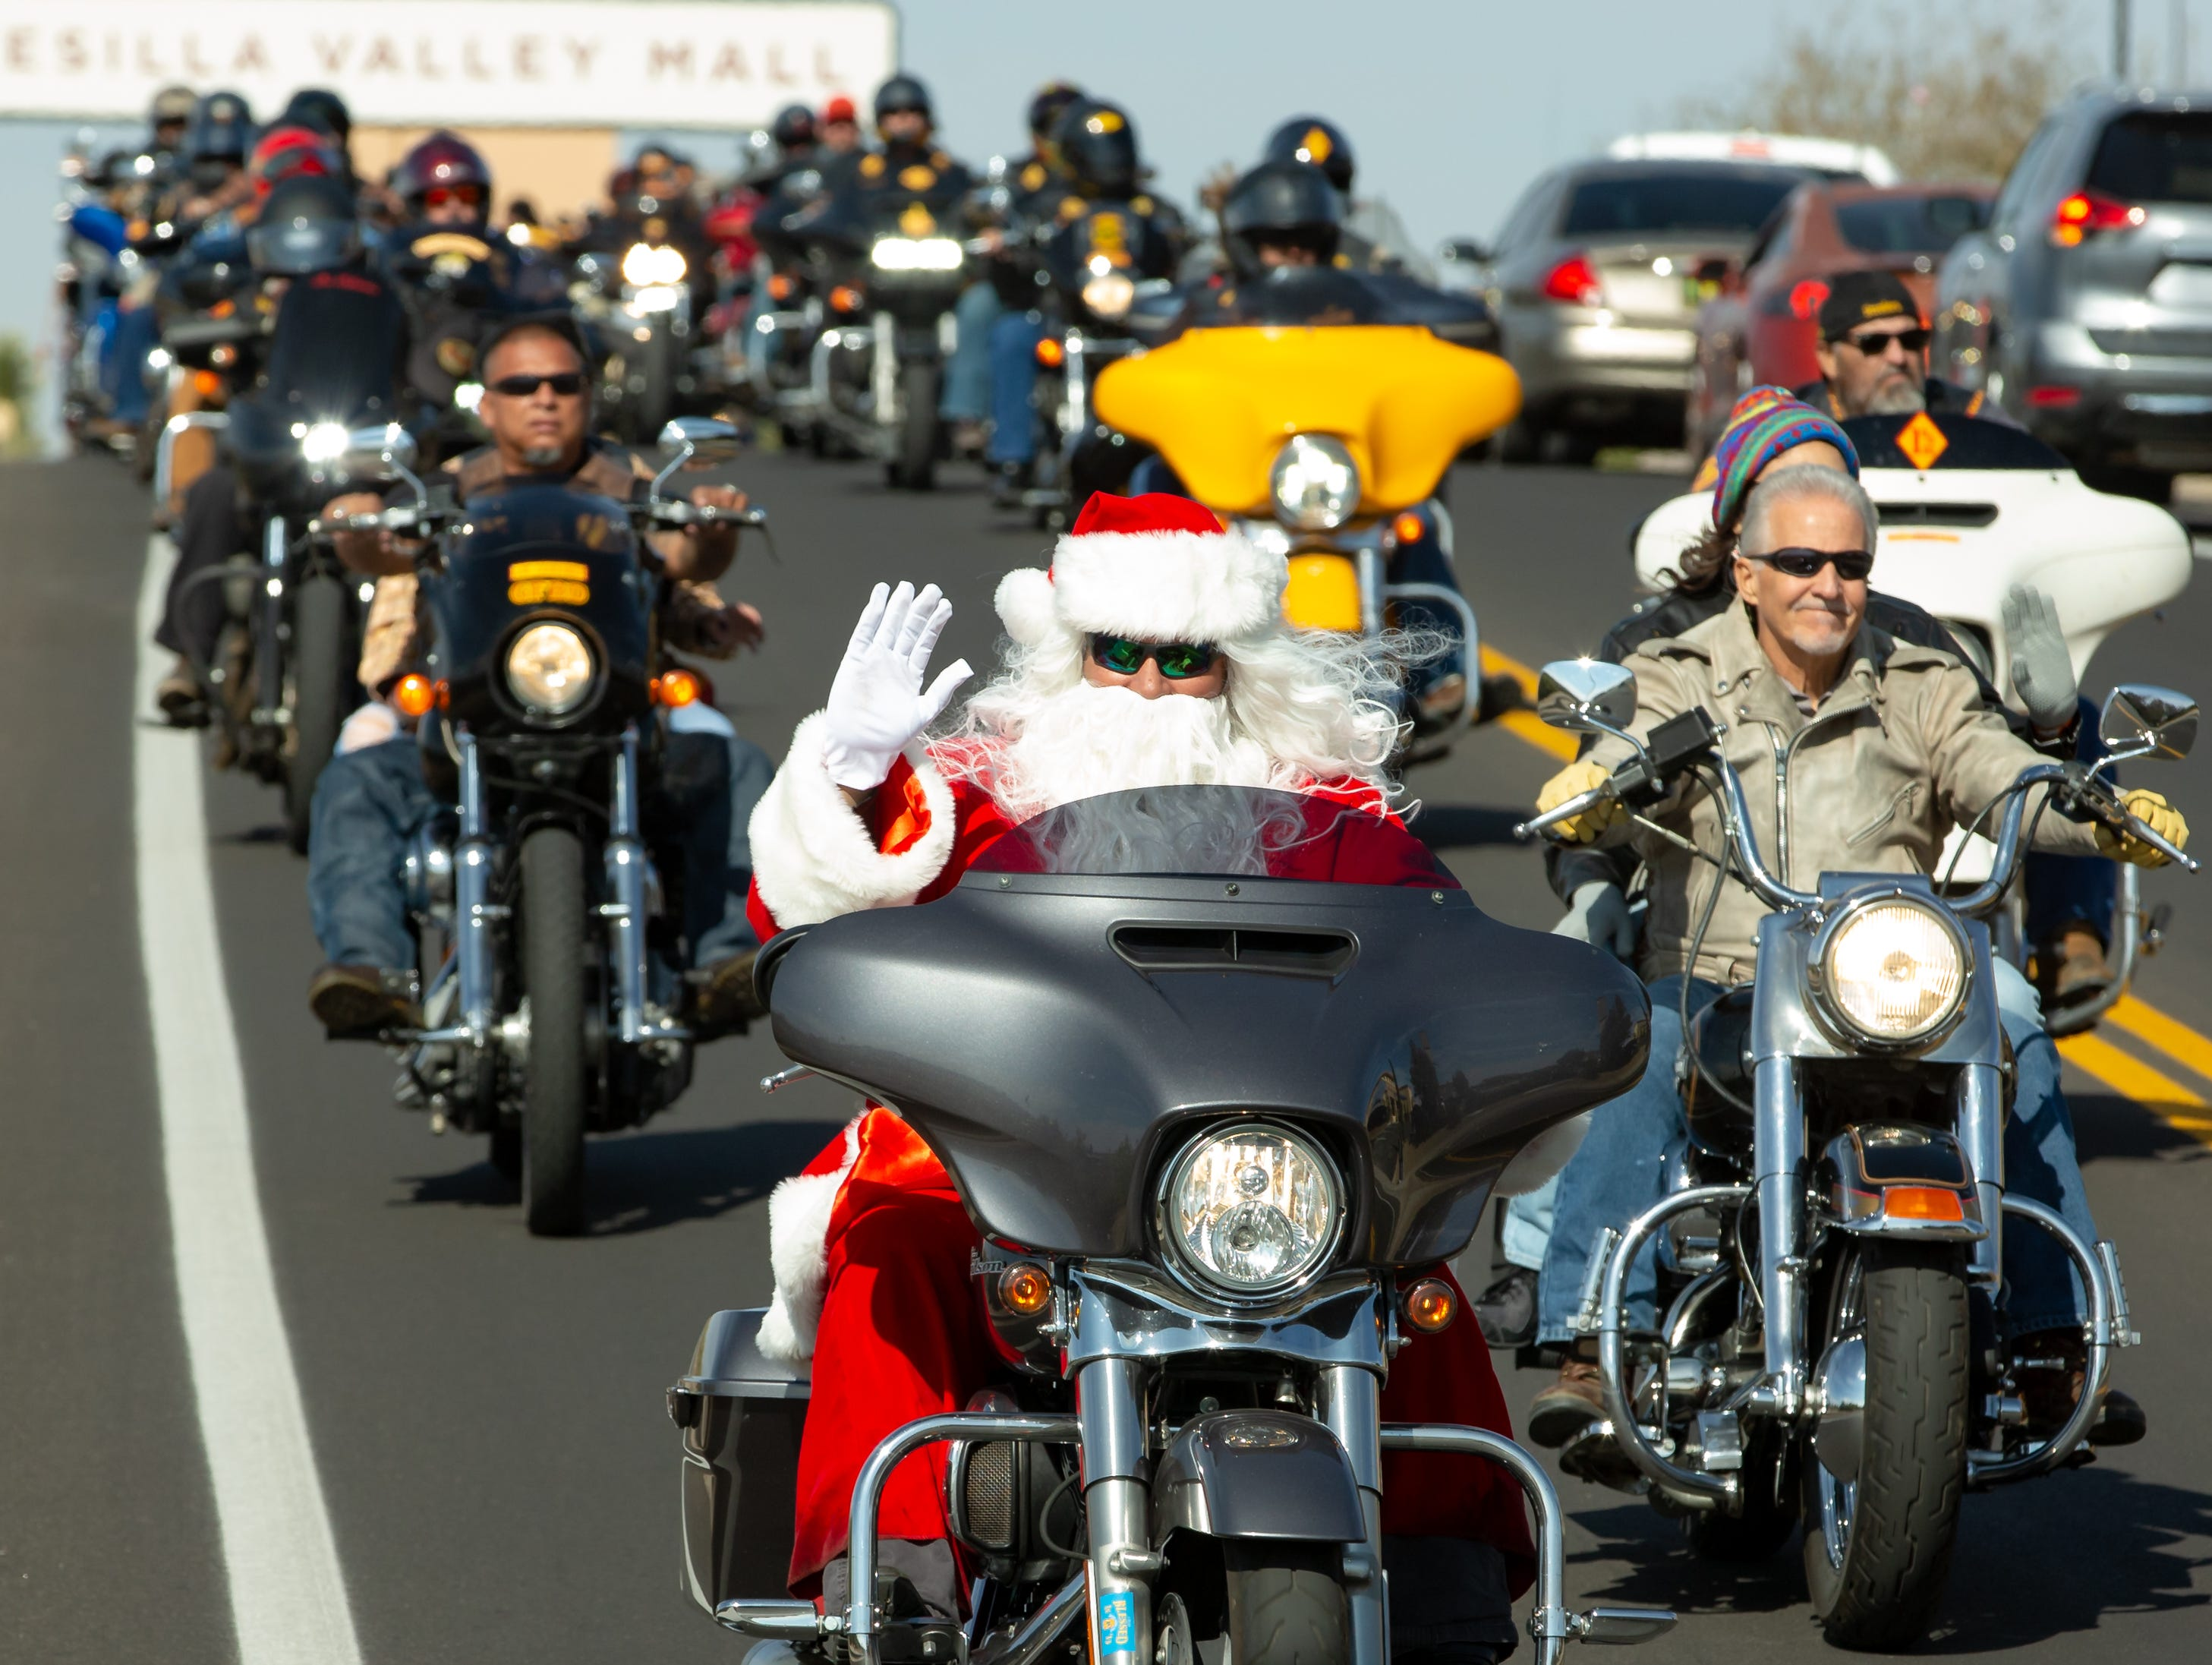 Santa joins hundreds of bikers as they cruise down  S. Don Roser Dr. on Sunday Nov. 18, 2018, during the 38th annual Toys for Kids Motorcycle Parade to benefit children in southern New Mexico.